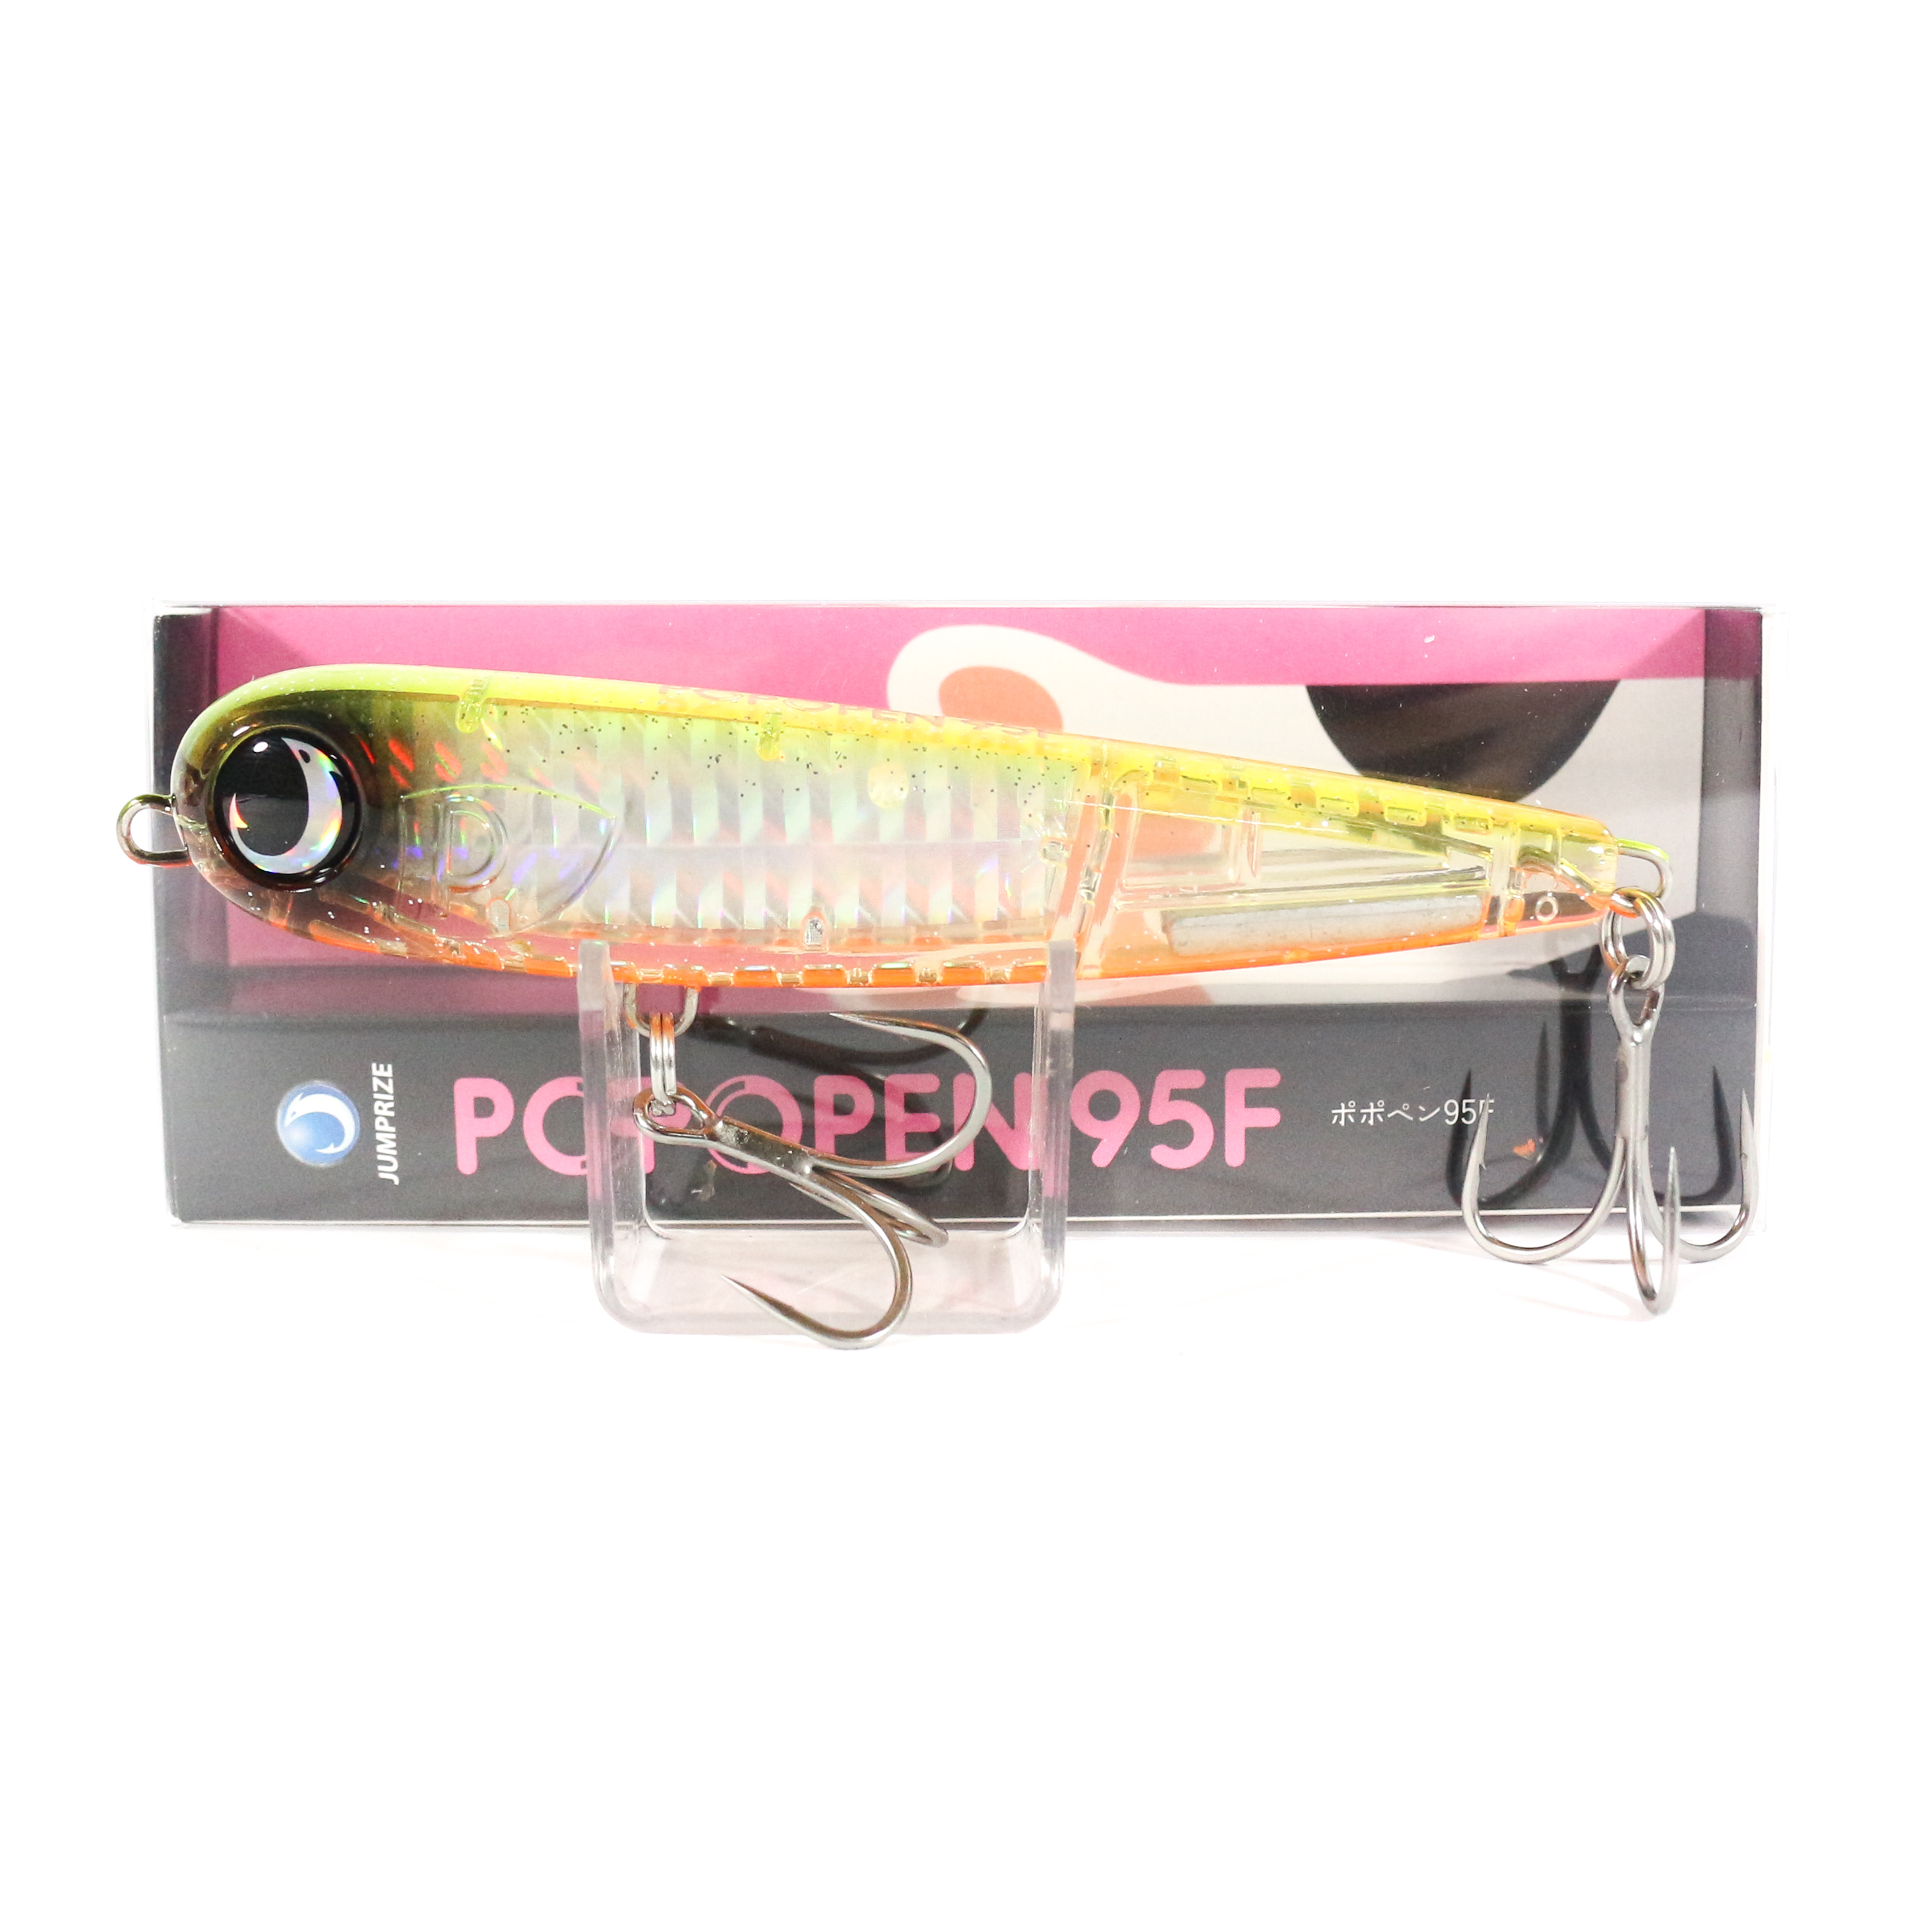 Sale Jumprize Popopen 95F Floating Lure (5391)